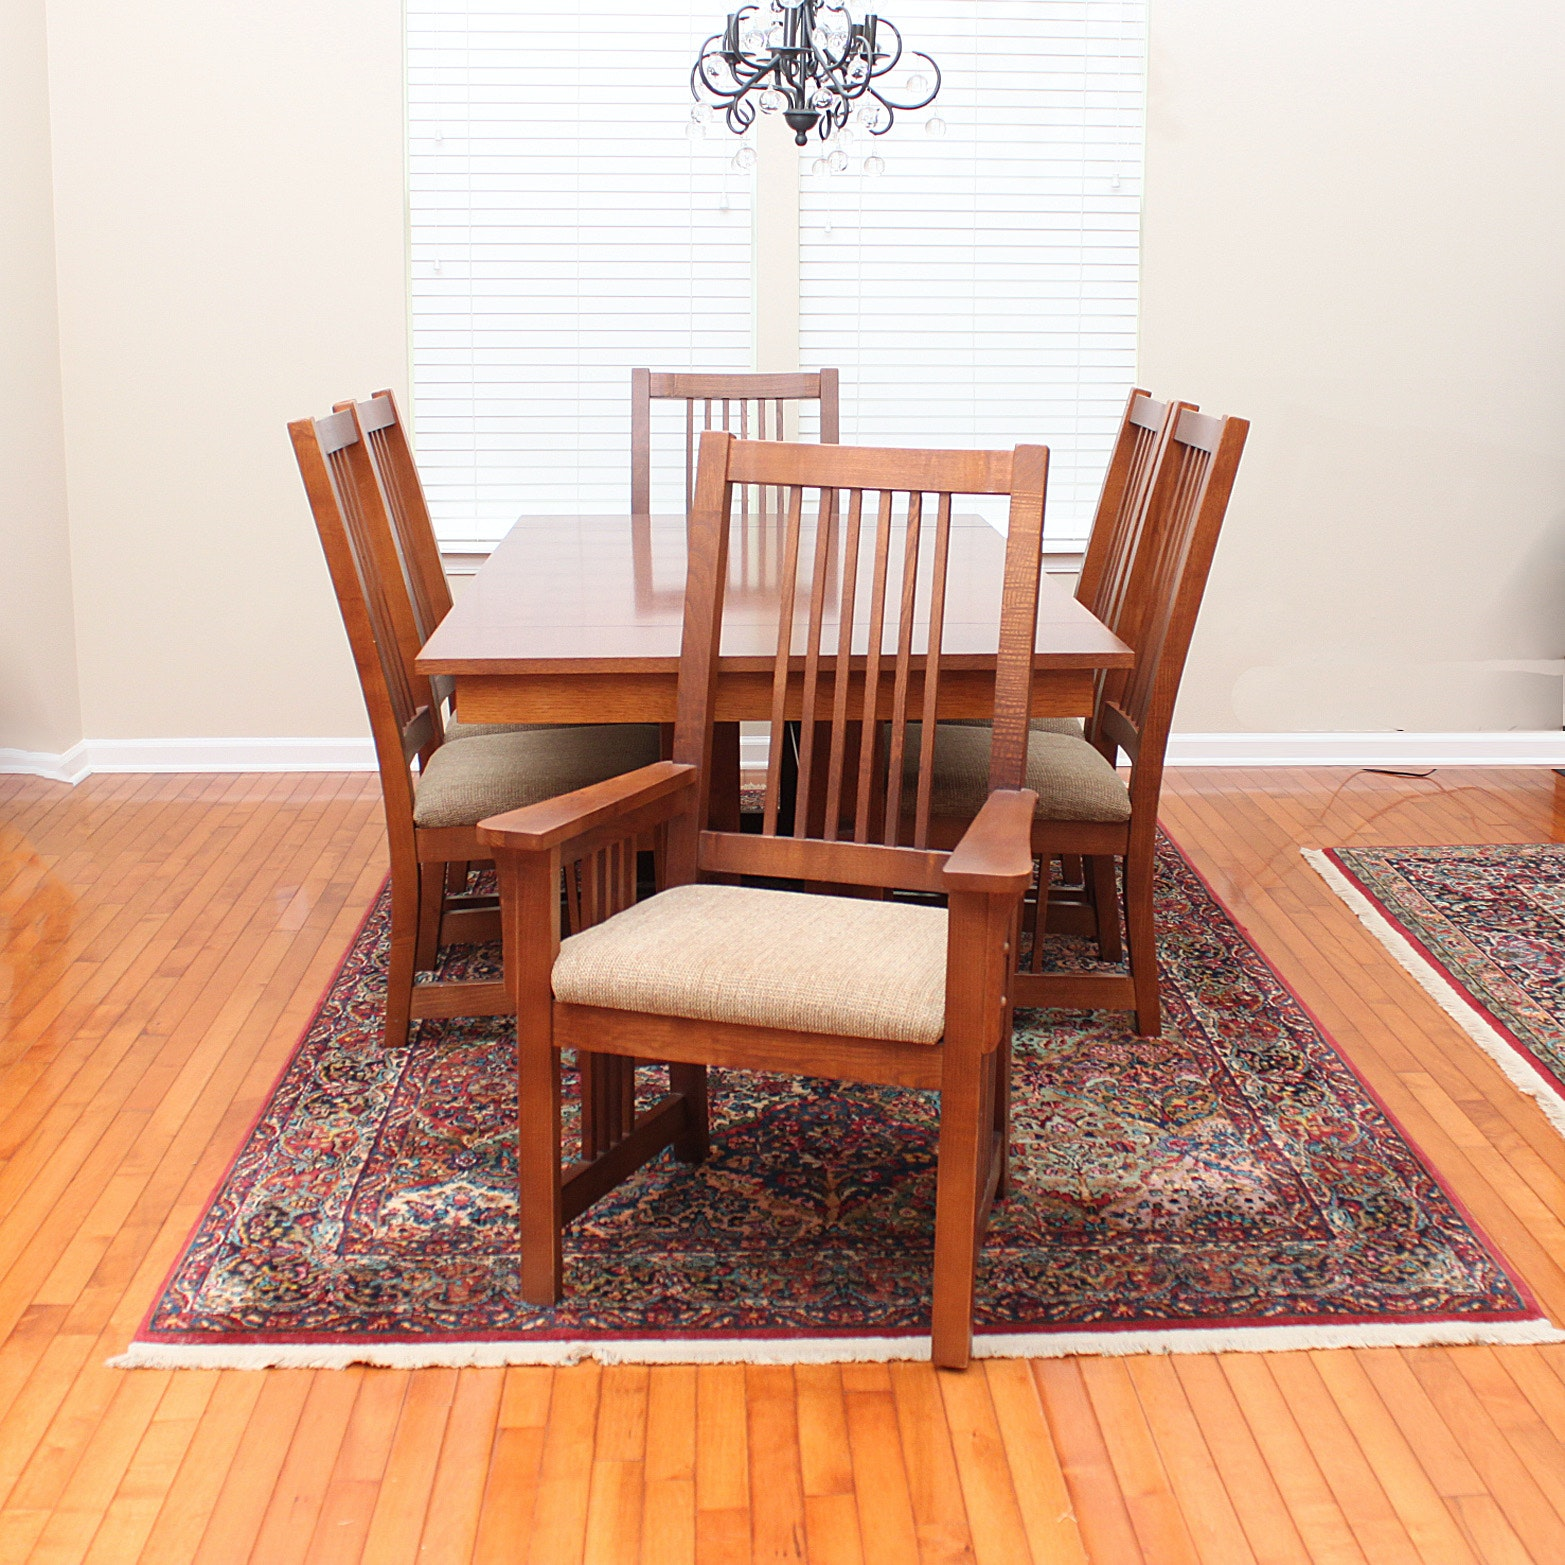 Exceptionnel Bassett Furniture Mission Style Oak Dining Table And Chairs ...